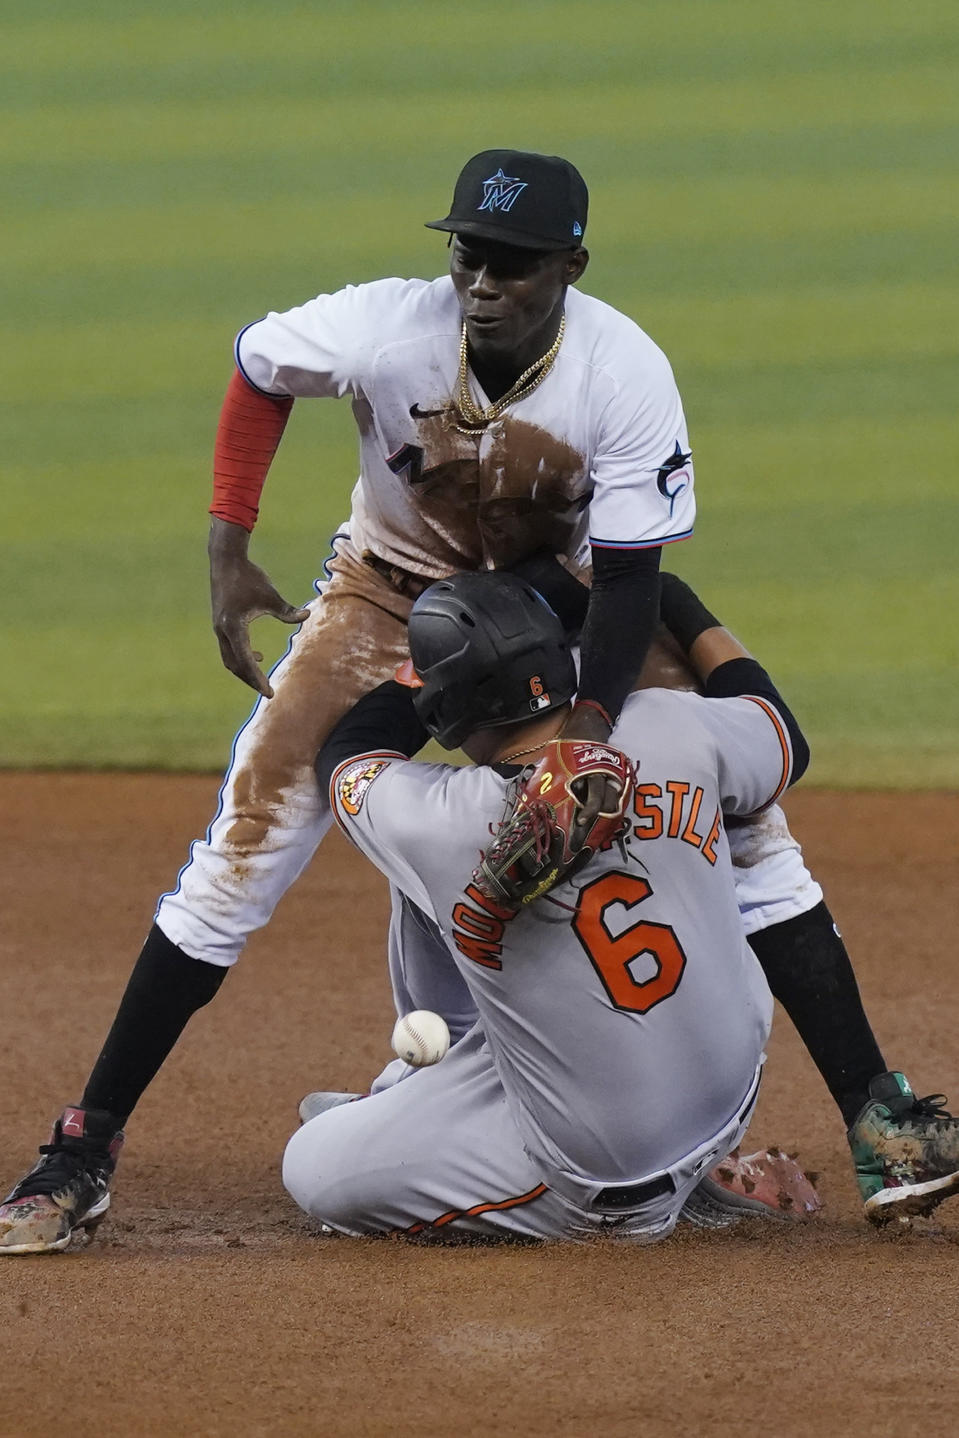 Miami Marlins second baseman Jazz Chisholm Jr., rear, drops the ball as Baltimore Orioles' Ryan Mountcastle (6) steals the base during the third inning of a baseball game, Wednesday, April 21, 2021, in Miami. (AP Photo/Marta Lavandier)